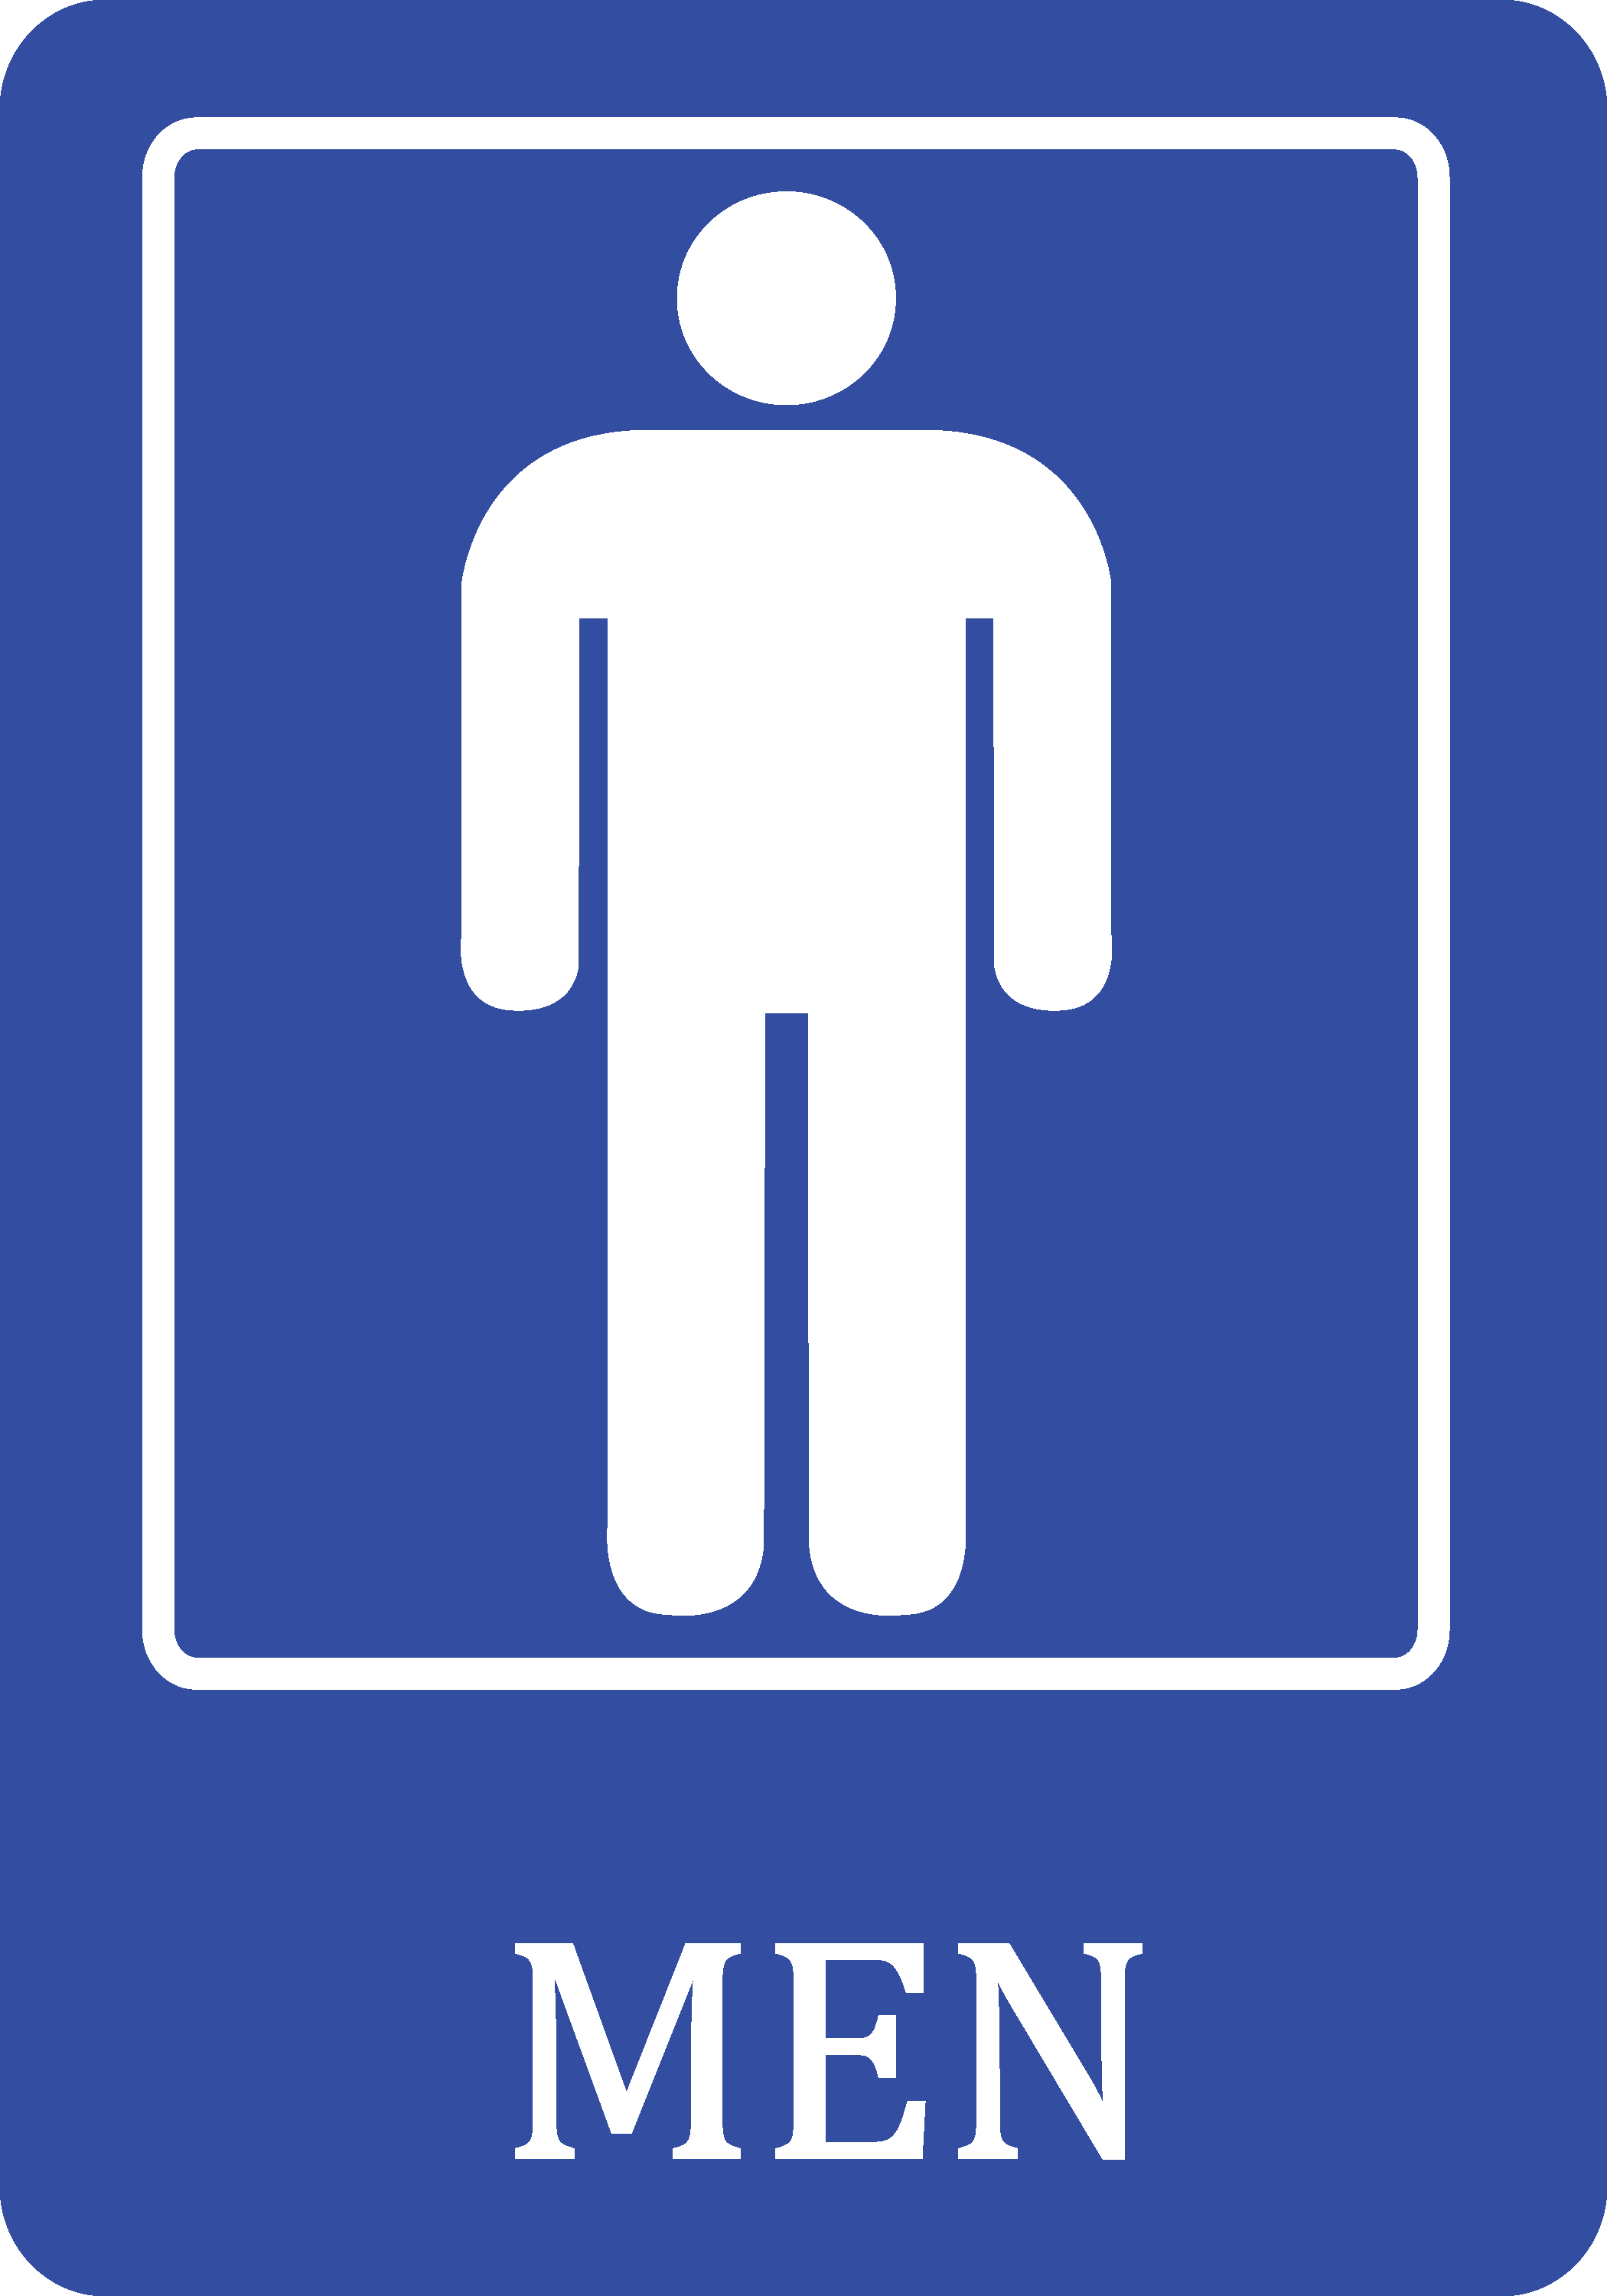 Attrayant Mens Bathroom Blue Sign   Men Public Restroom Signs   Plastic, 12x18    Walmart.com